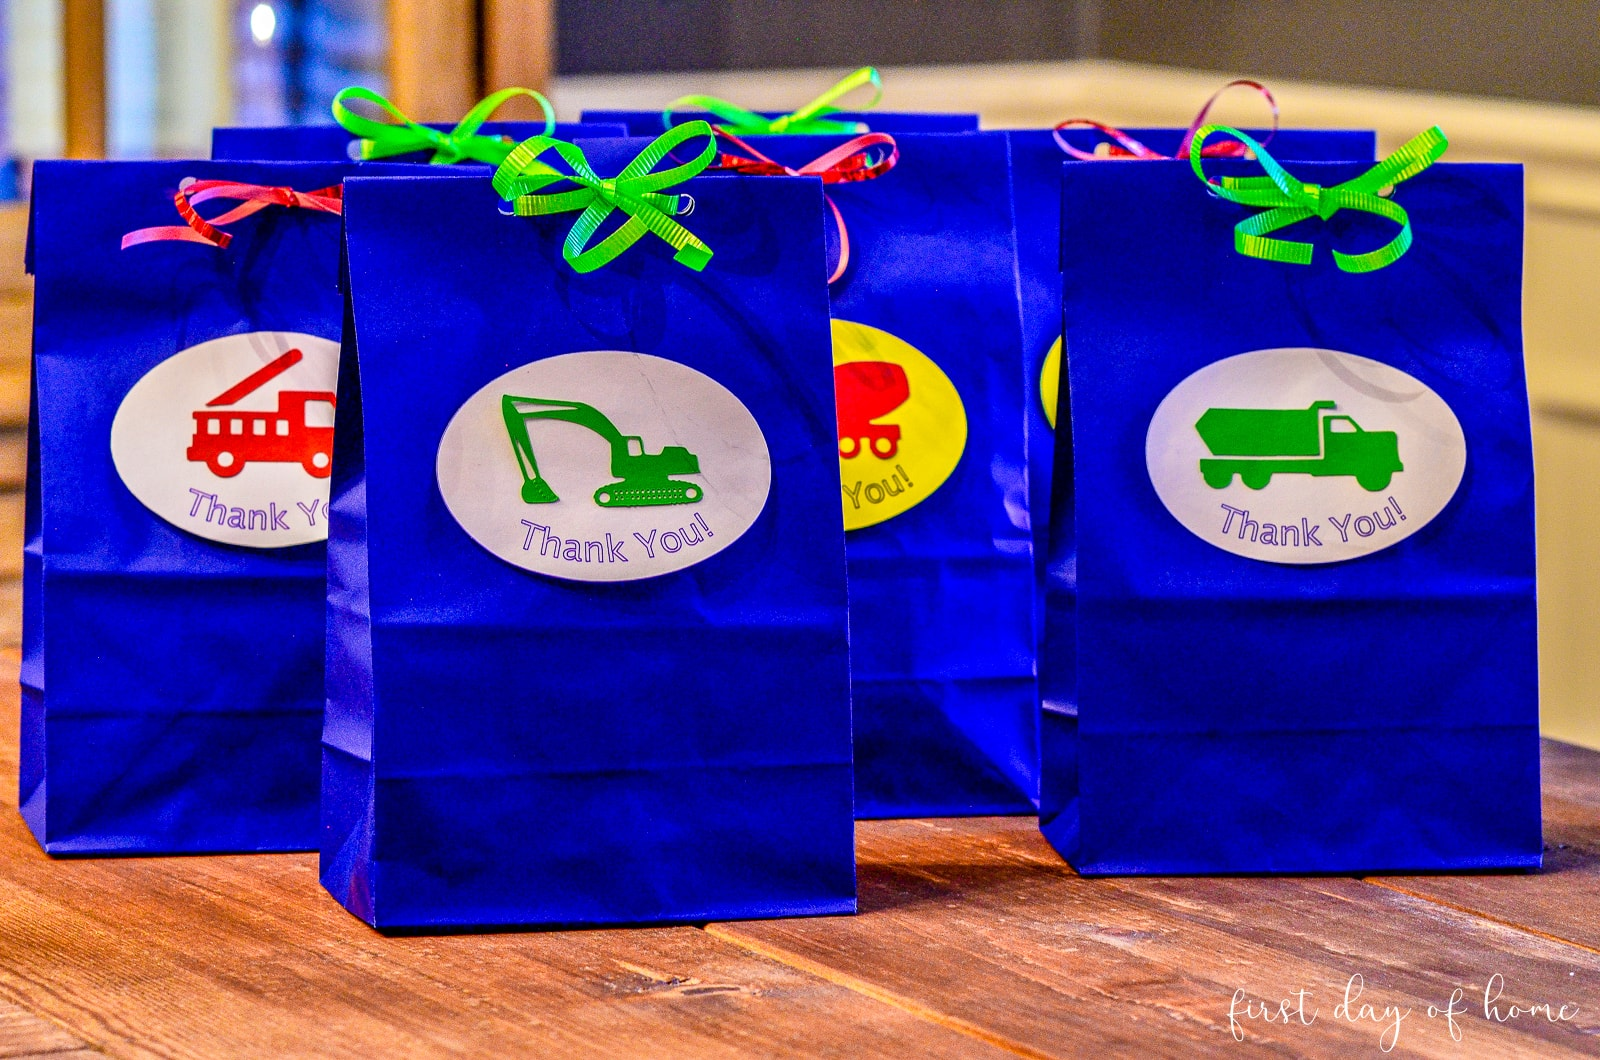 Blue gift bags with vehicles on front, made with Cricut machine for transportation themed birthday party